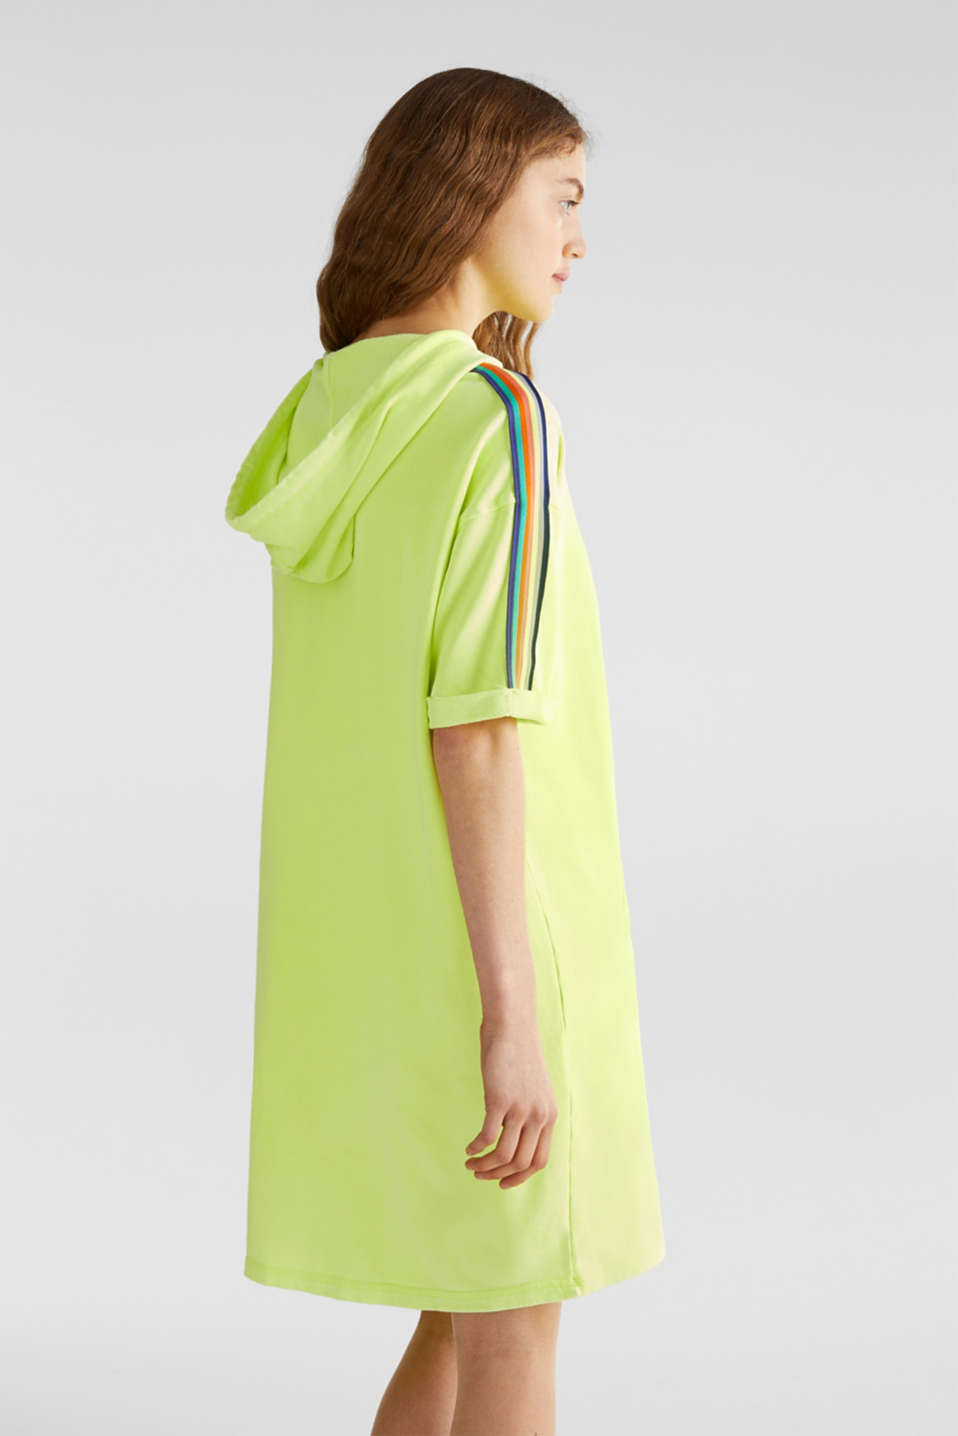 NEON sweatshirt dress with stripes, 100% cotton, LIME YELLOW, detail image number 2